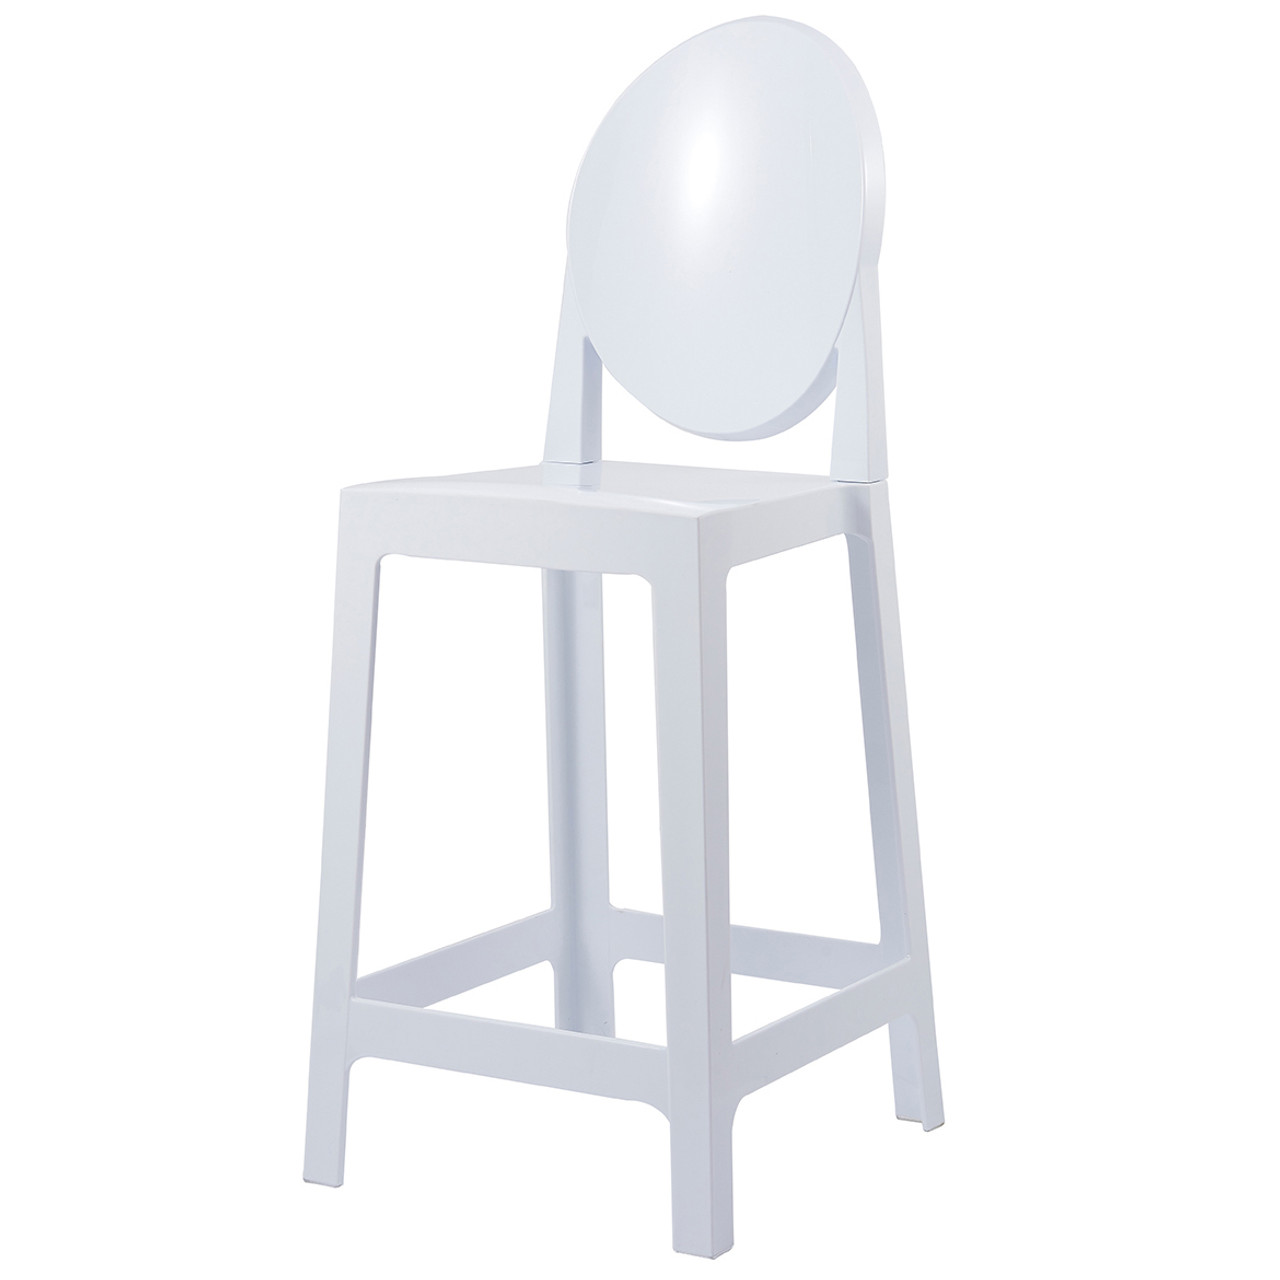 Stupendous Victoria Style Ghost Bar Stool Counter Stool Clear Stool 25 Seat Height Cjindustries Chair Design For Home Cjindustriesco